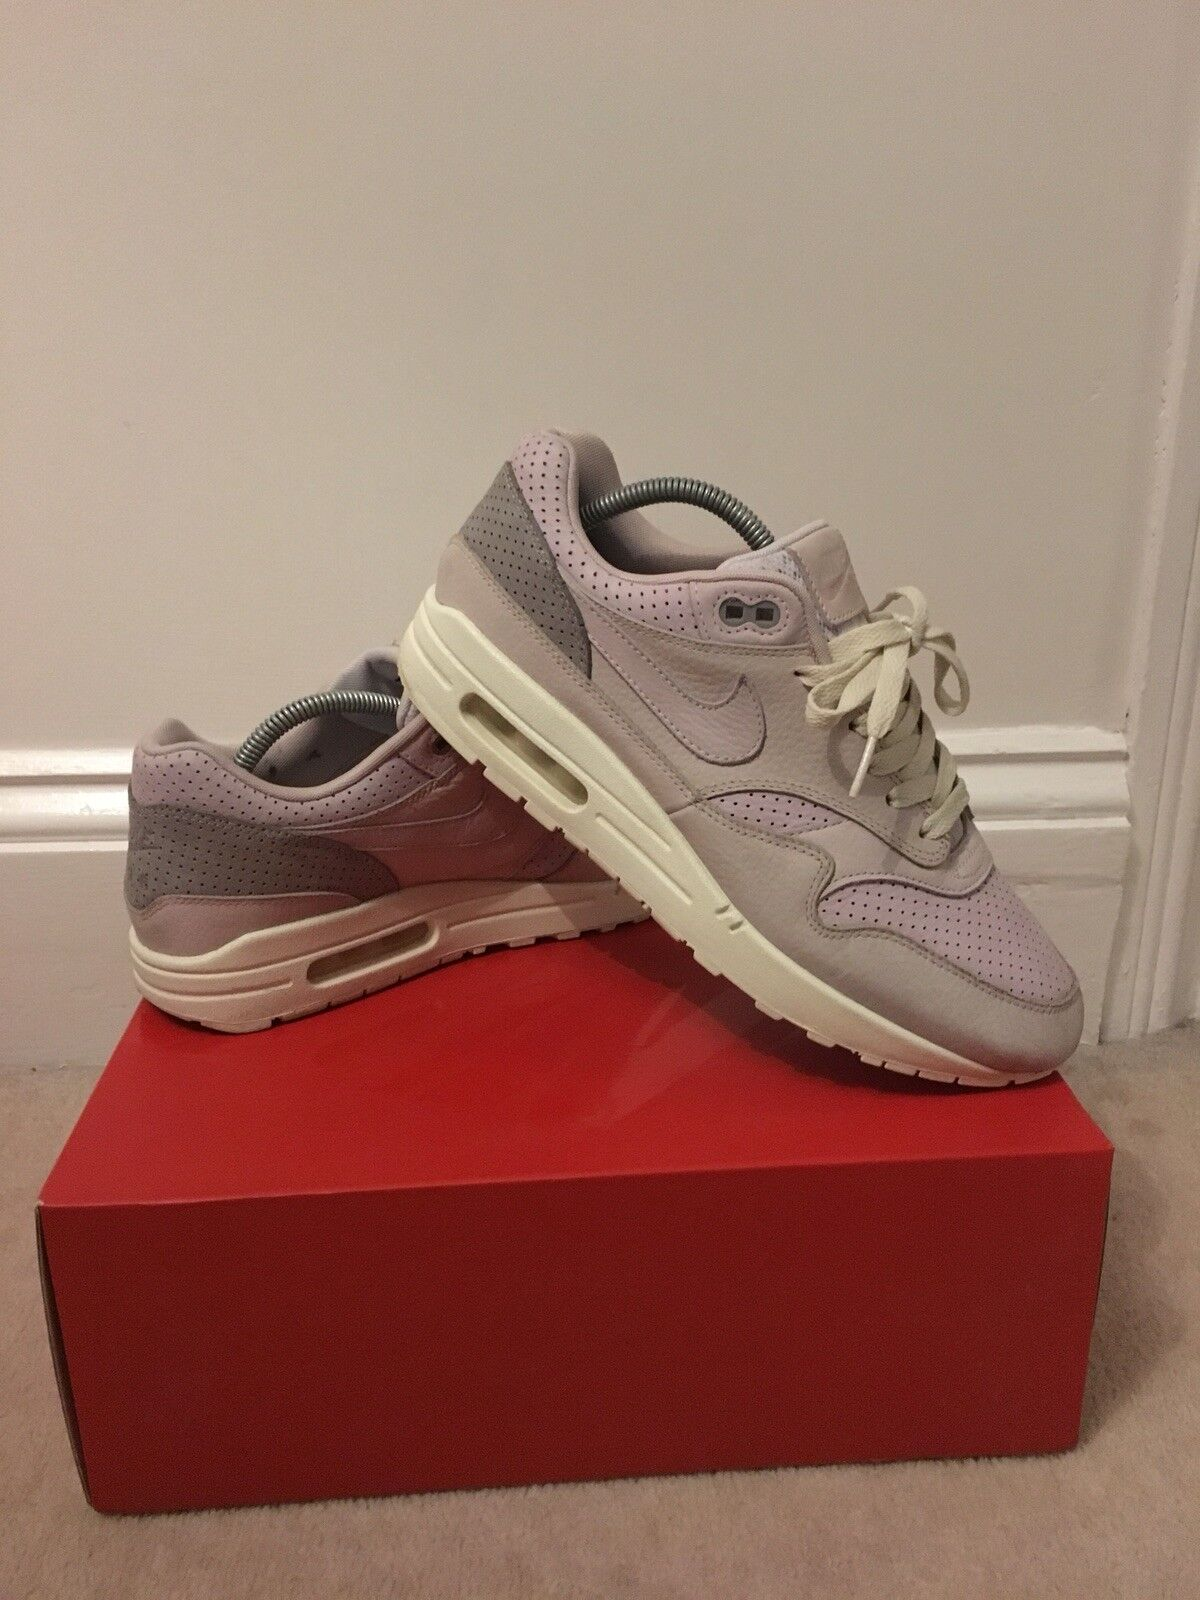 Nike Air Max 1 Violet Pinnacle Uk 8